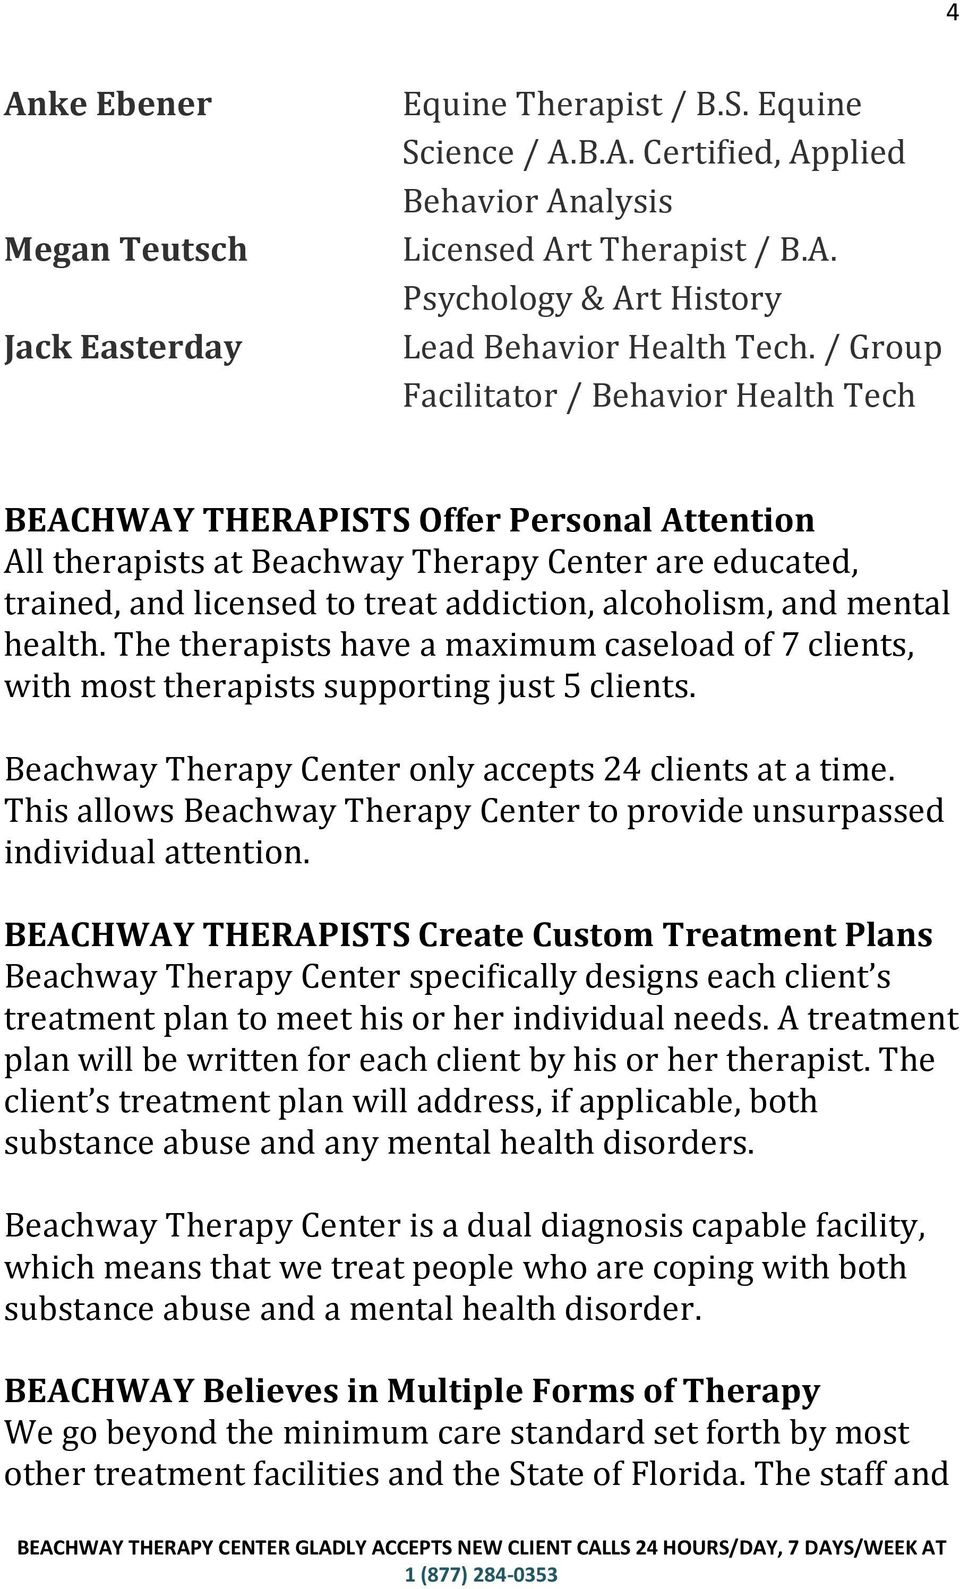 and mental health. The therapists have a maximum caseload of 7 clients, with most therapists supporting just 5 clients. Beachway Therapy Center only accepts 24 clients at a time.